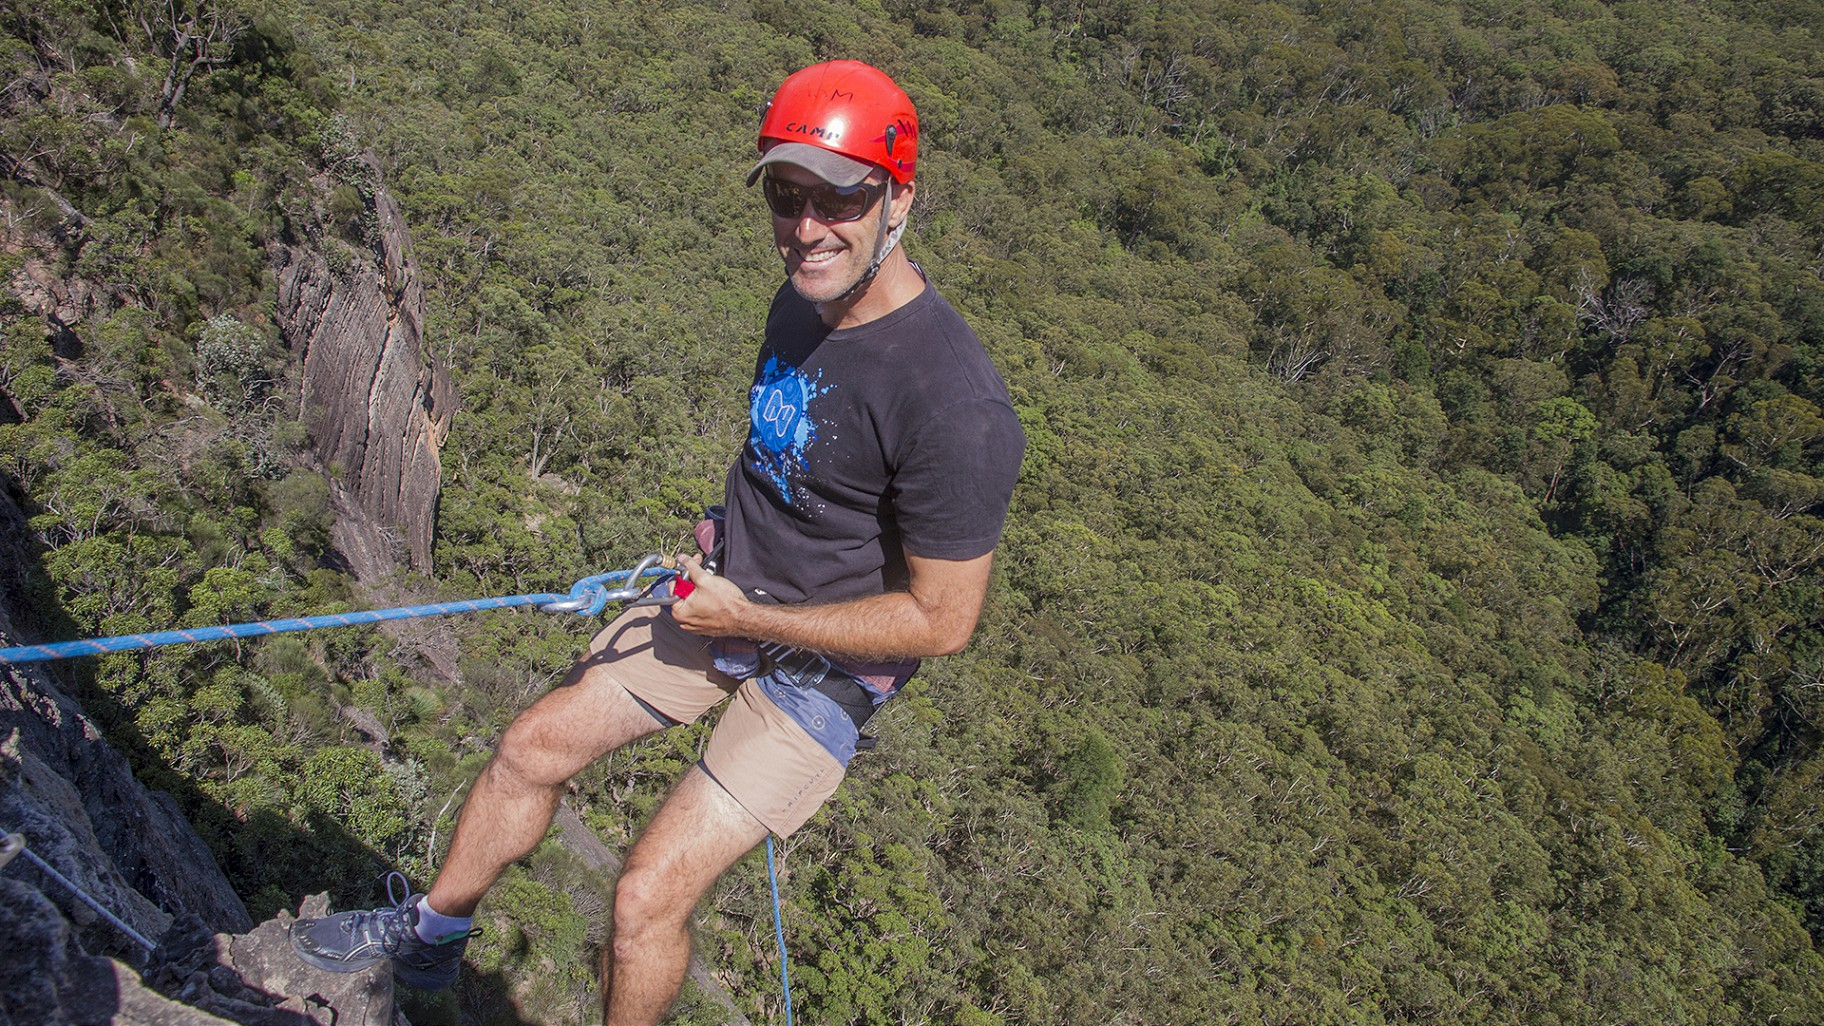 Full Day Abseiling Adventure With Lunch